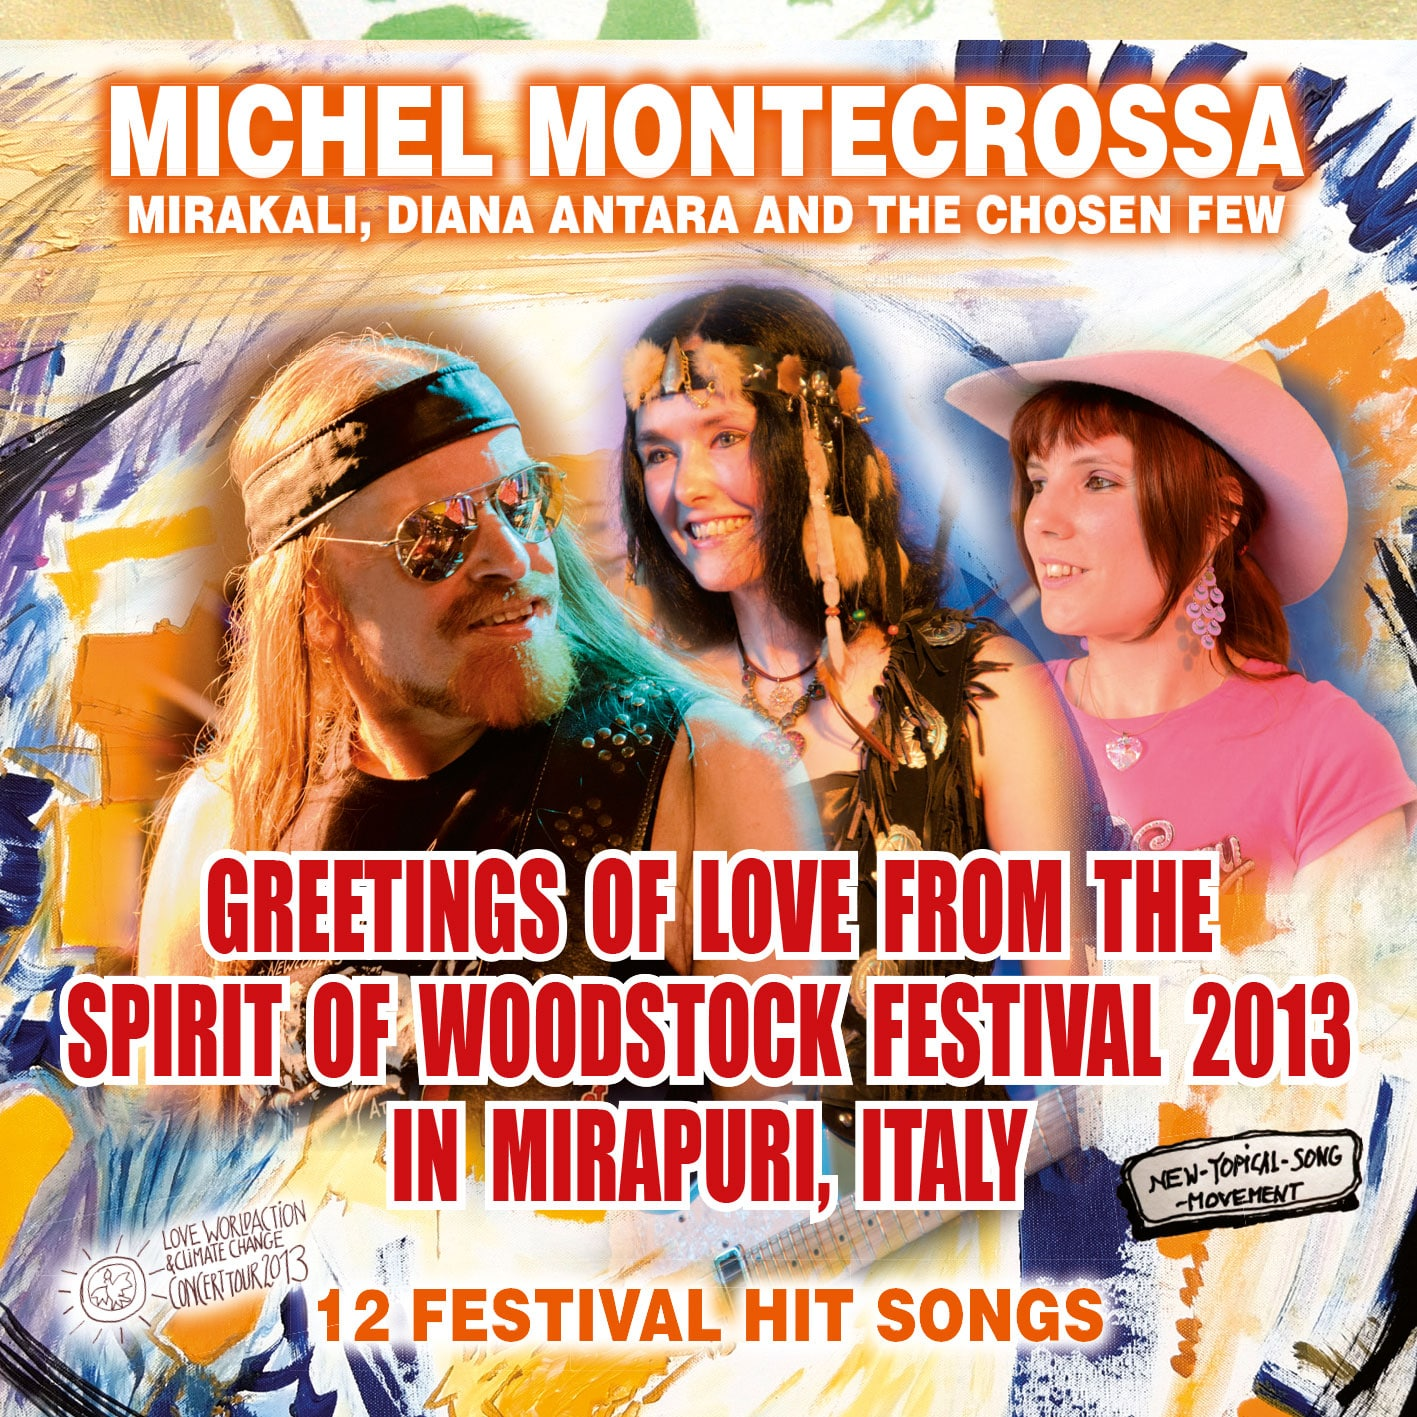 Greetings Of Love From The Spirit Of Woodstock Festival 2013 In